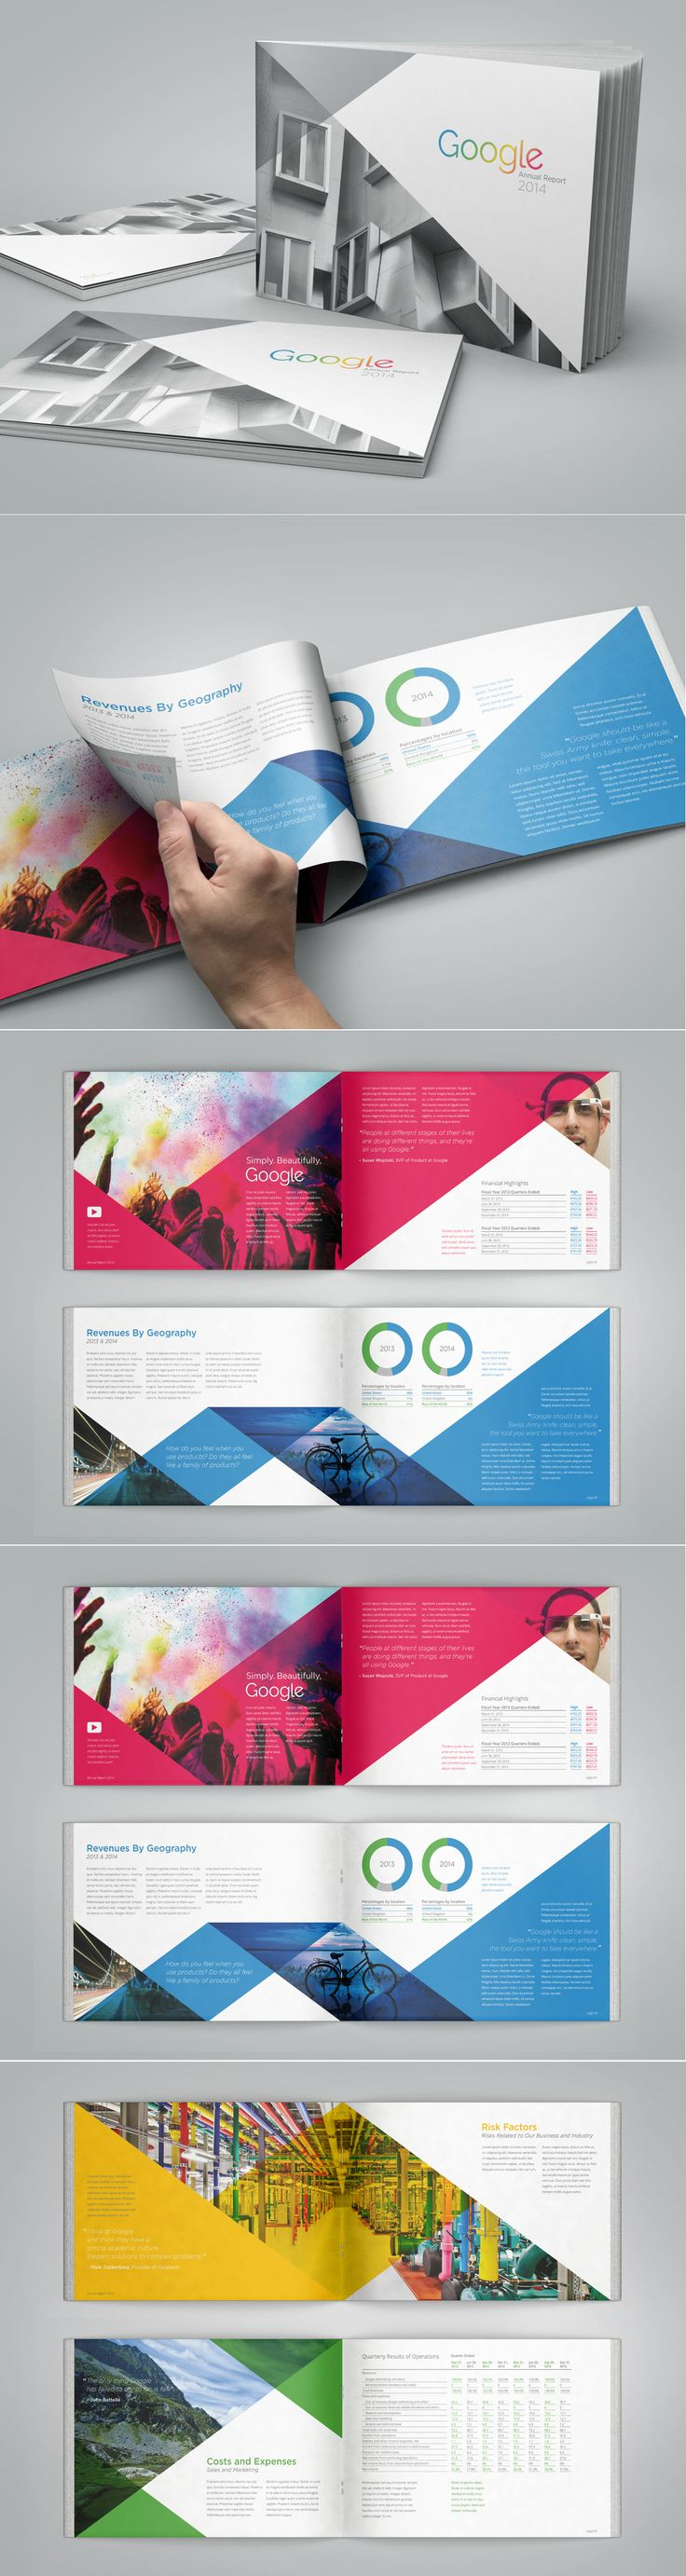 This annual report is really aesthetically pleasing while still staying true to…